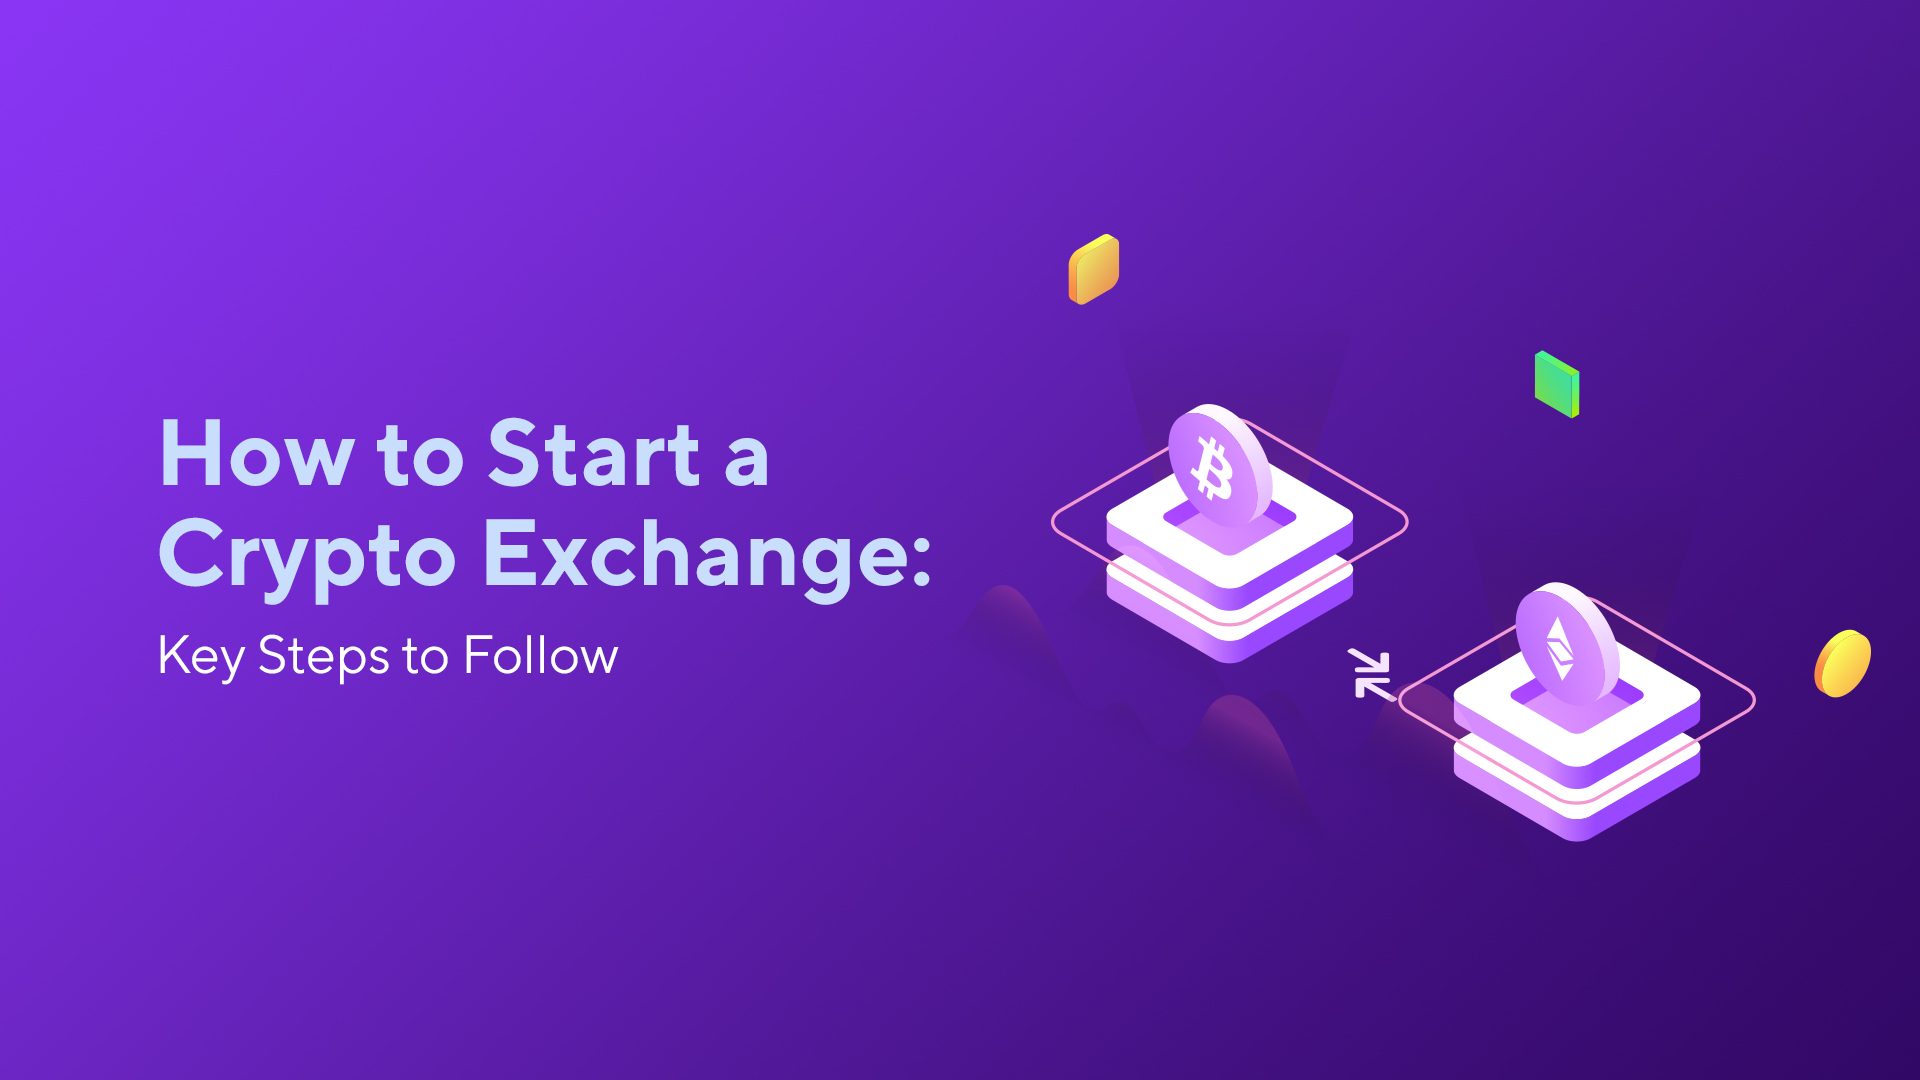 How to Start a Crypto Exchange: Key Steps to Follow